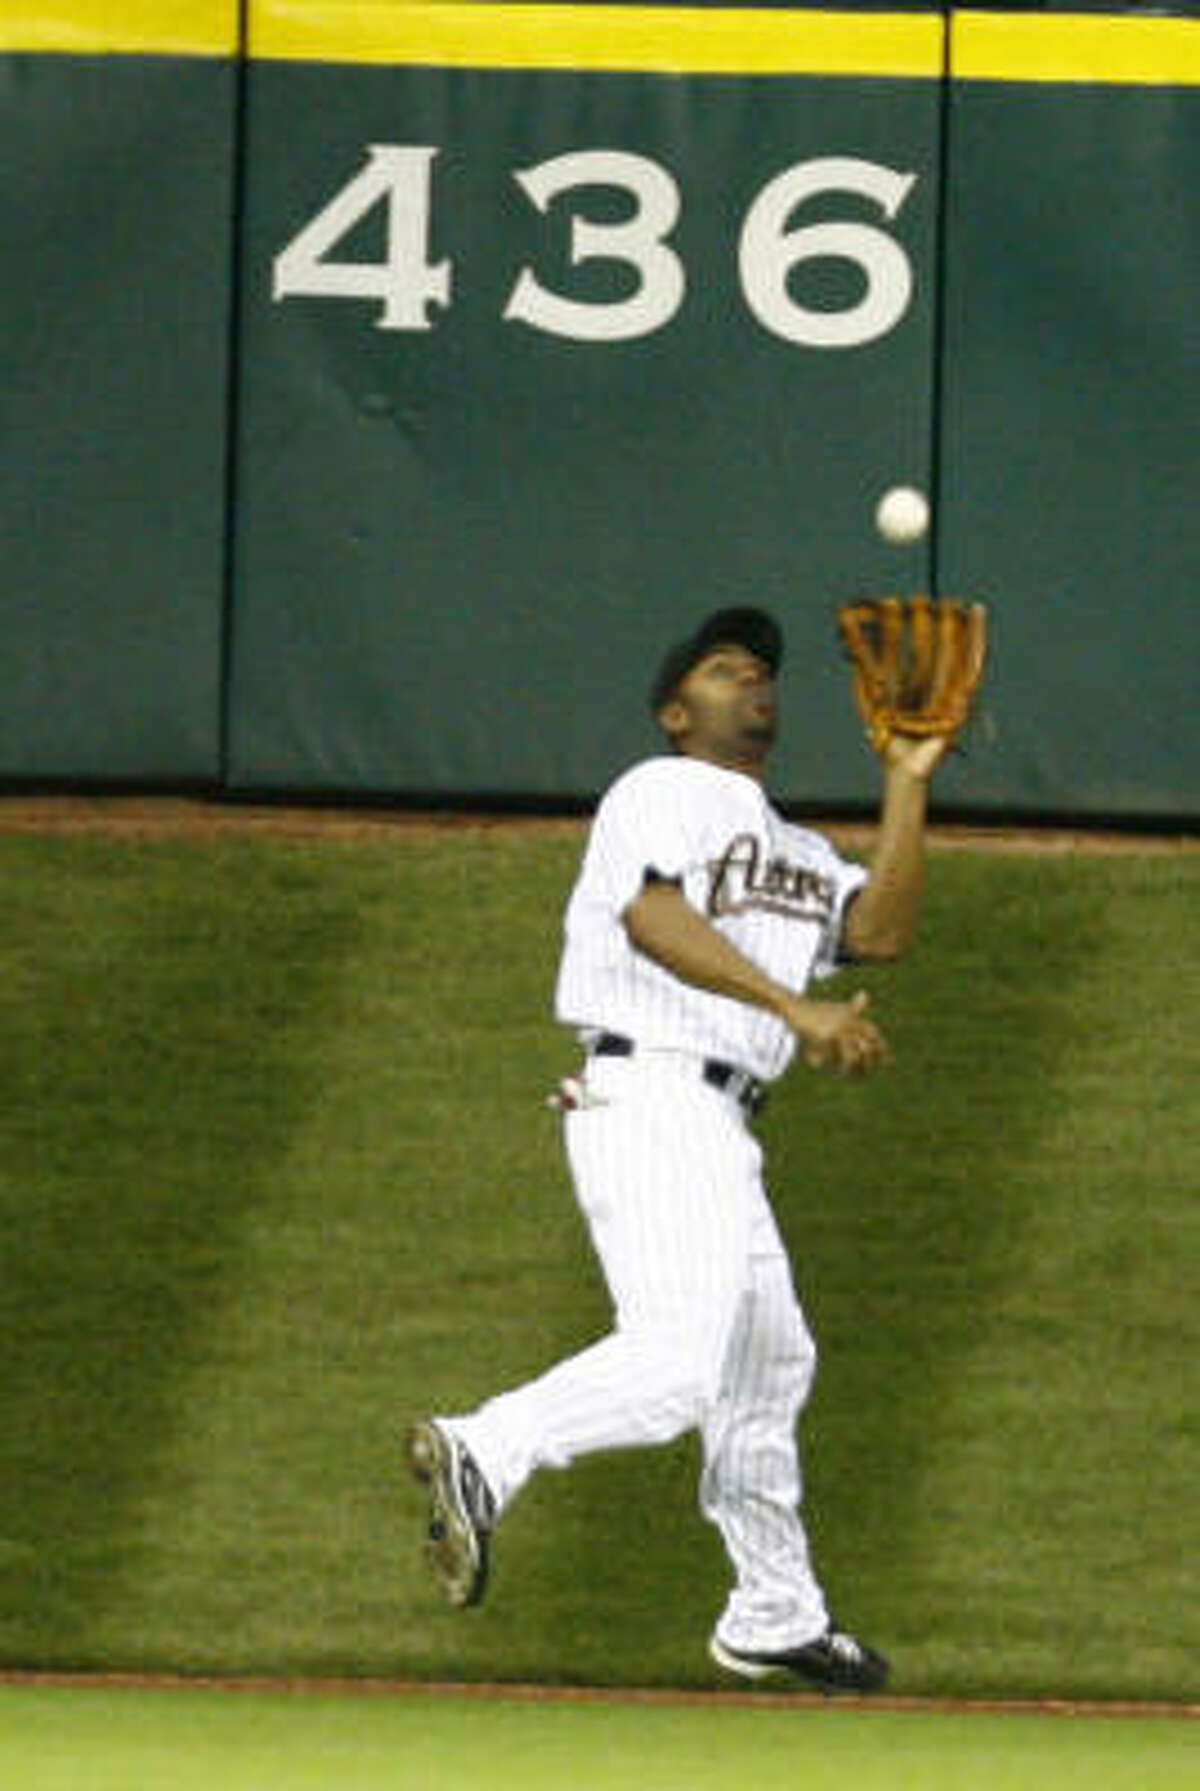 Astros center fielder Michael Bourn routinely made difficult catches on Tal's Hill at Minute Maid Park this season.